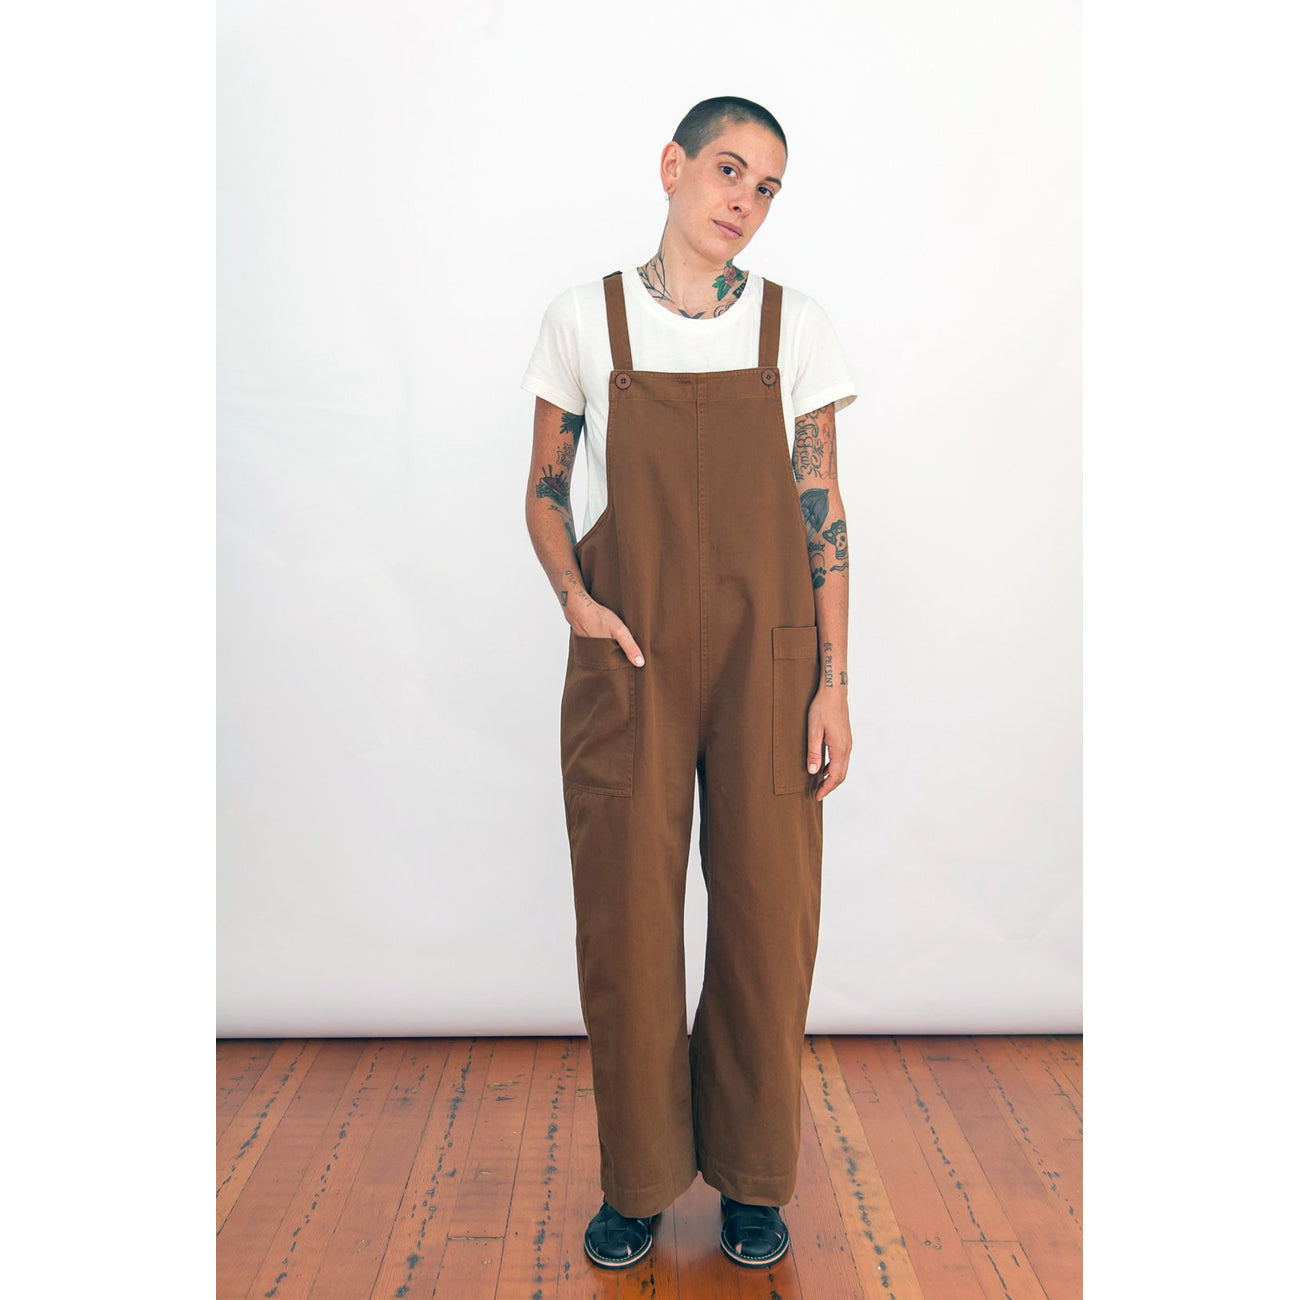 overall jumper in copper